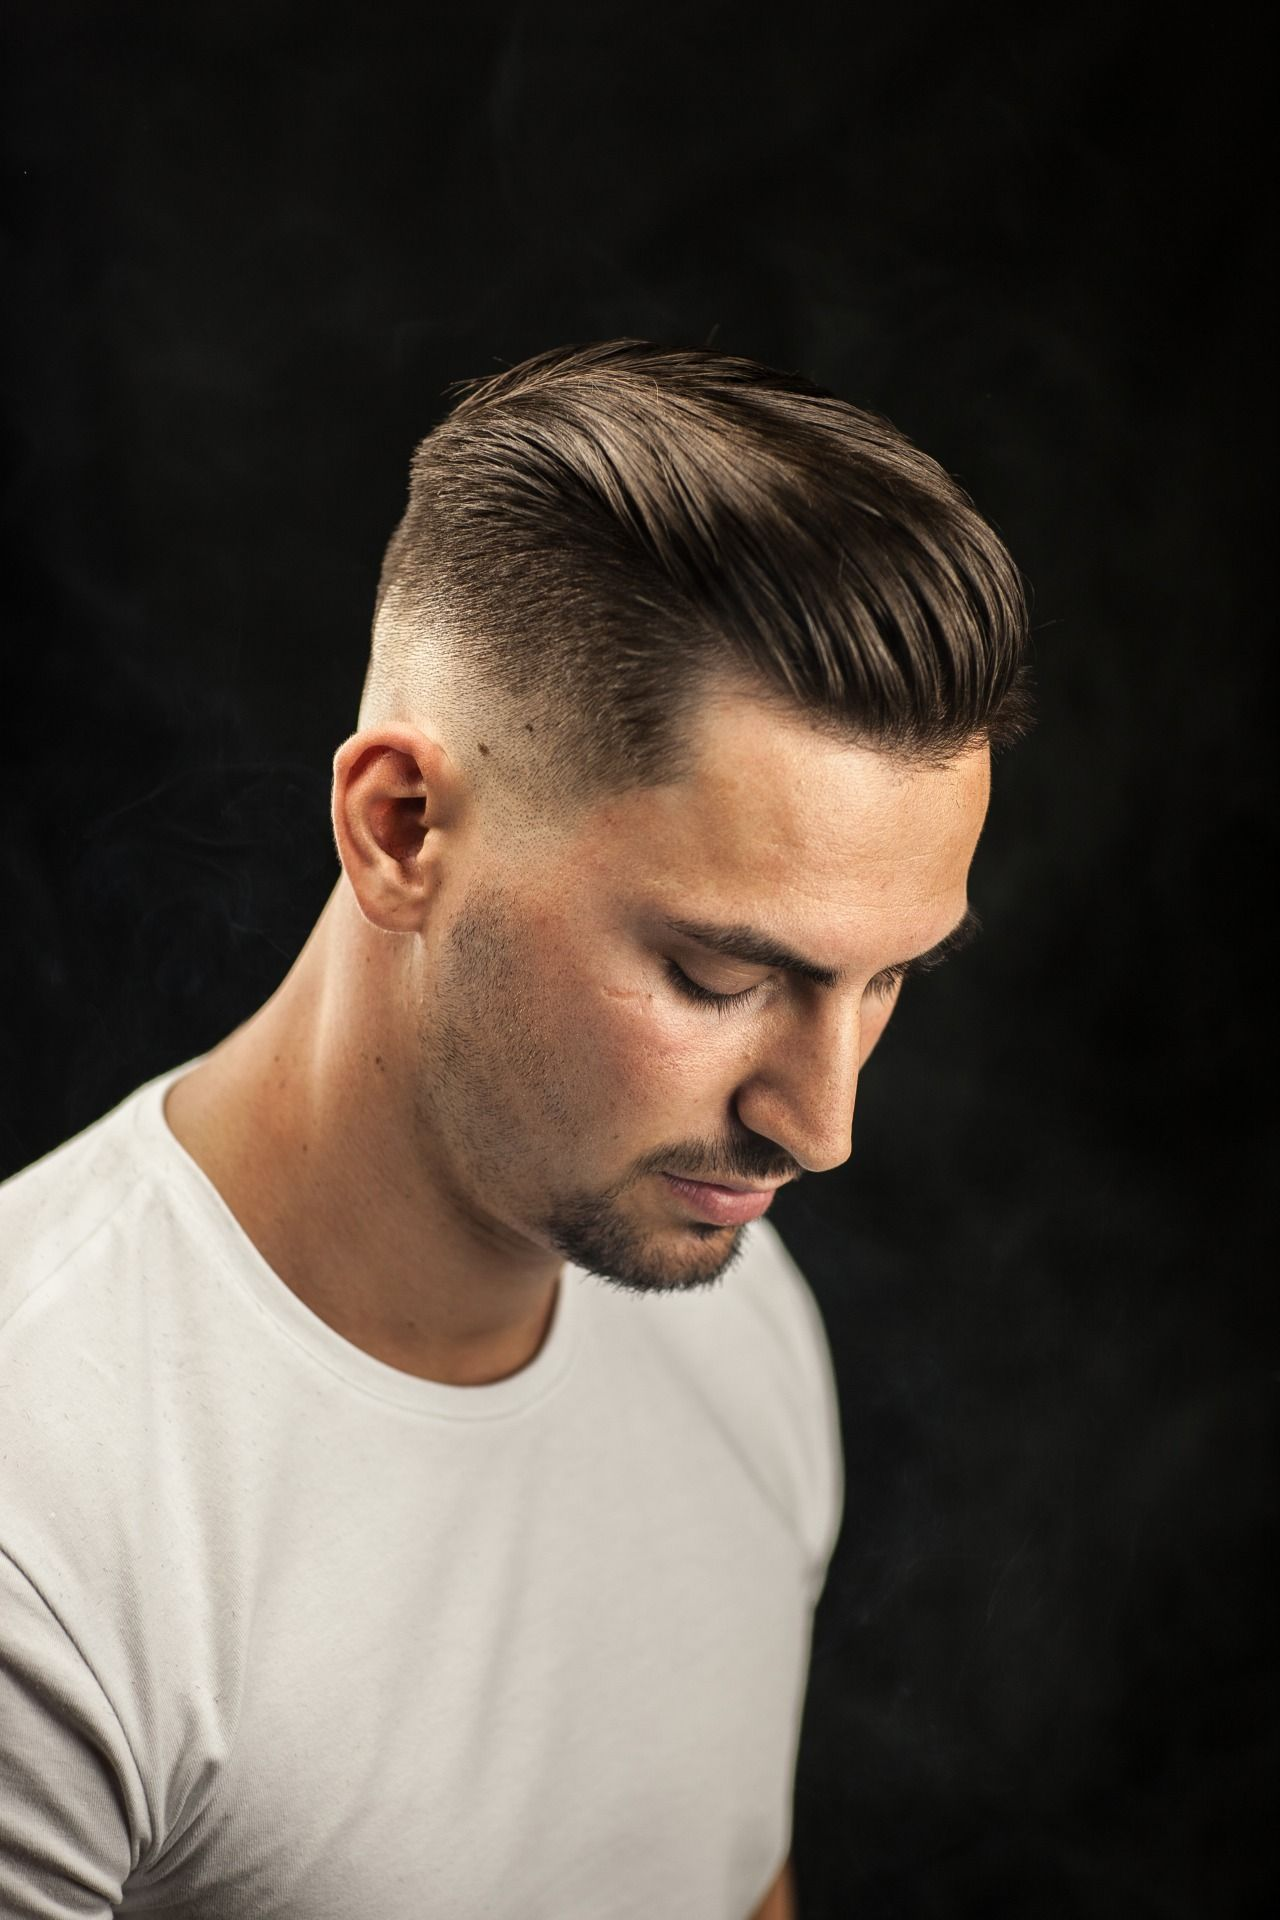 Man Haircut Hair Style of 2015 Mens hairstyles